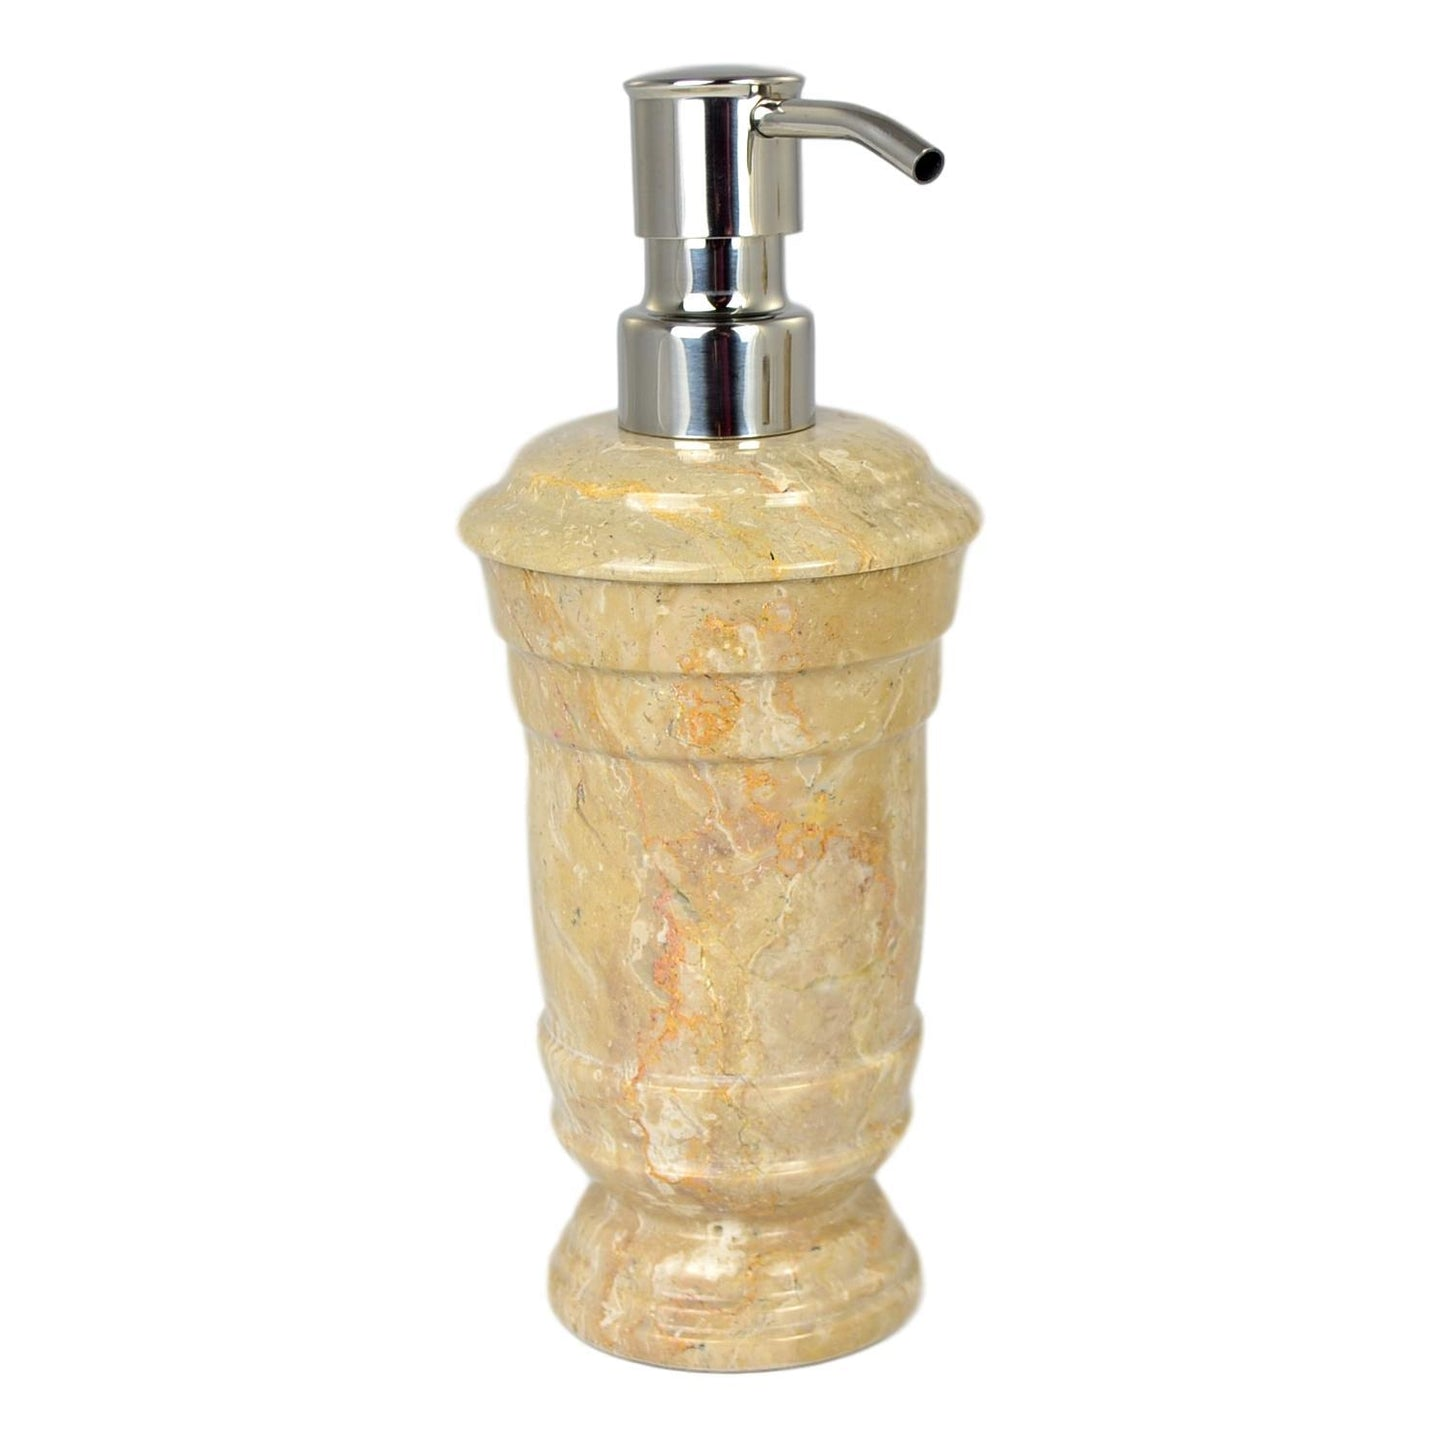 Sahara Beige Marble Liquid Soap | Lotion Dispenser - Nature Home Decor